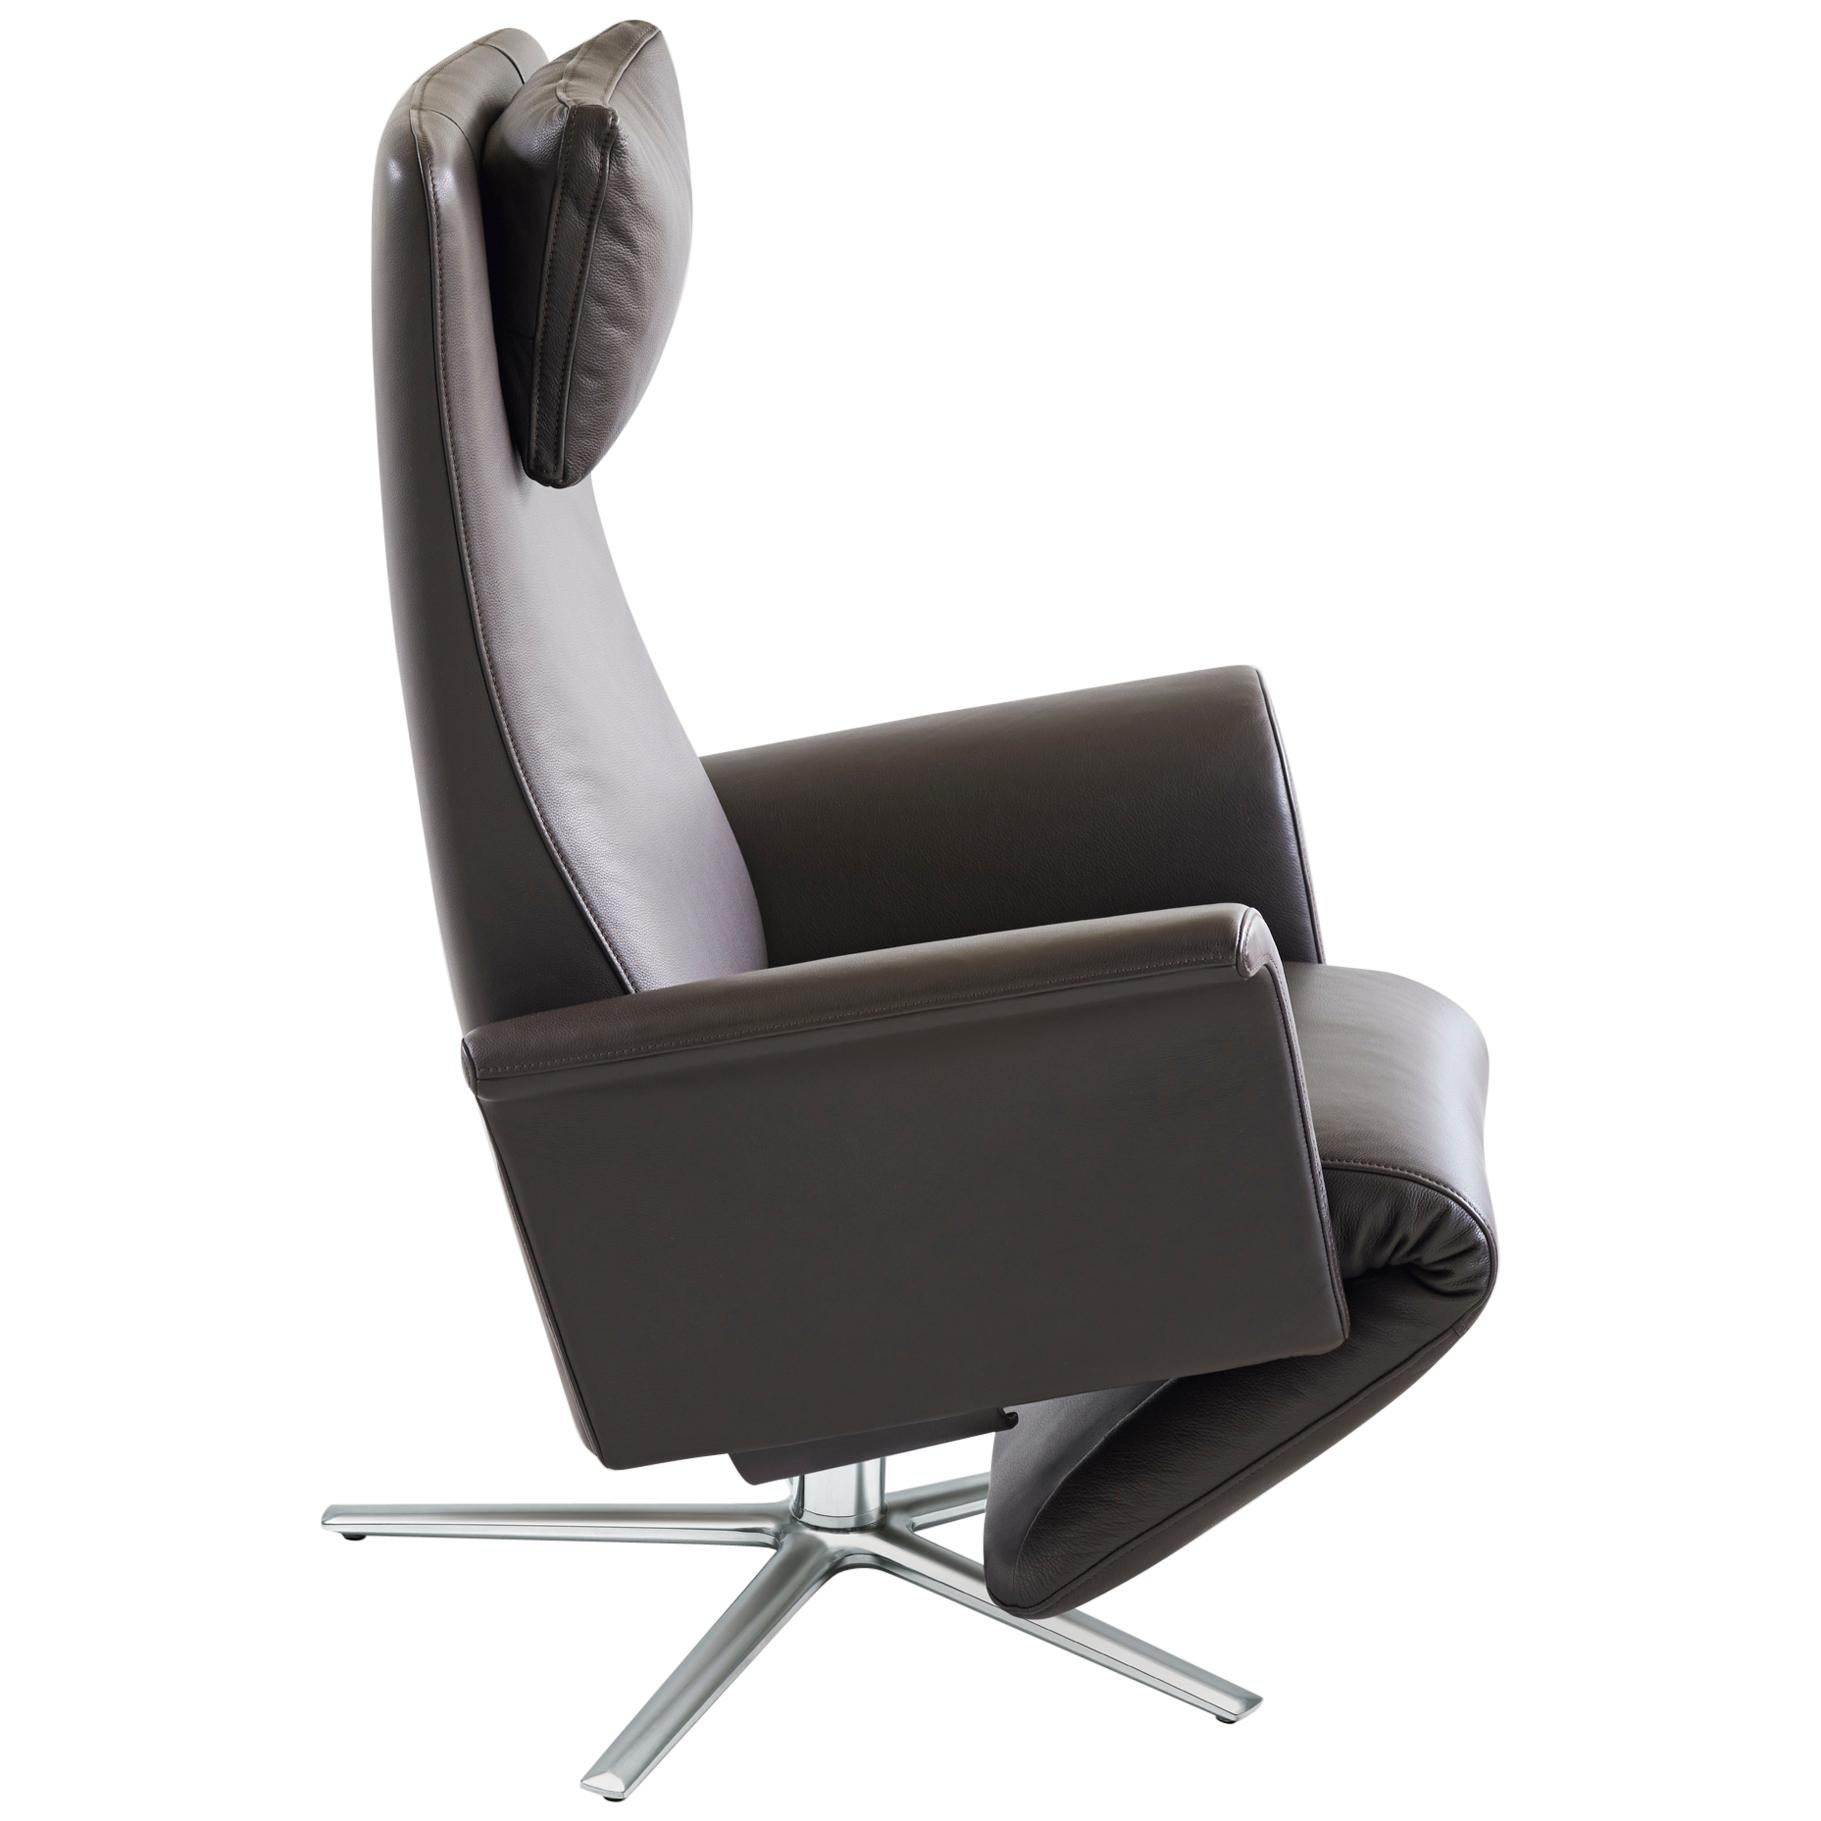 Filou Adjustable Reclining Leather Easy Lounge Chair by FSM